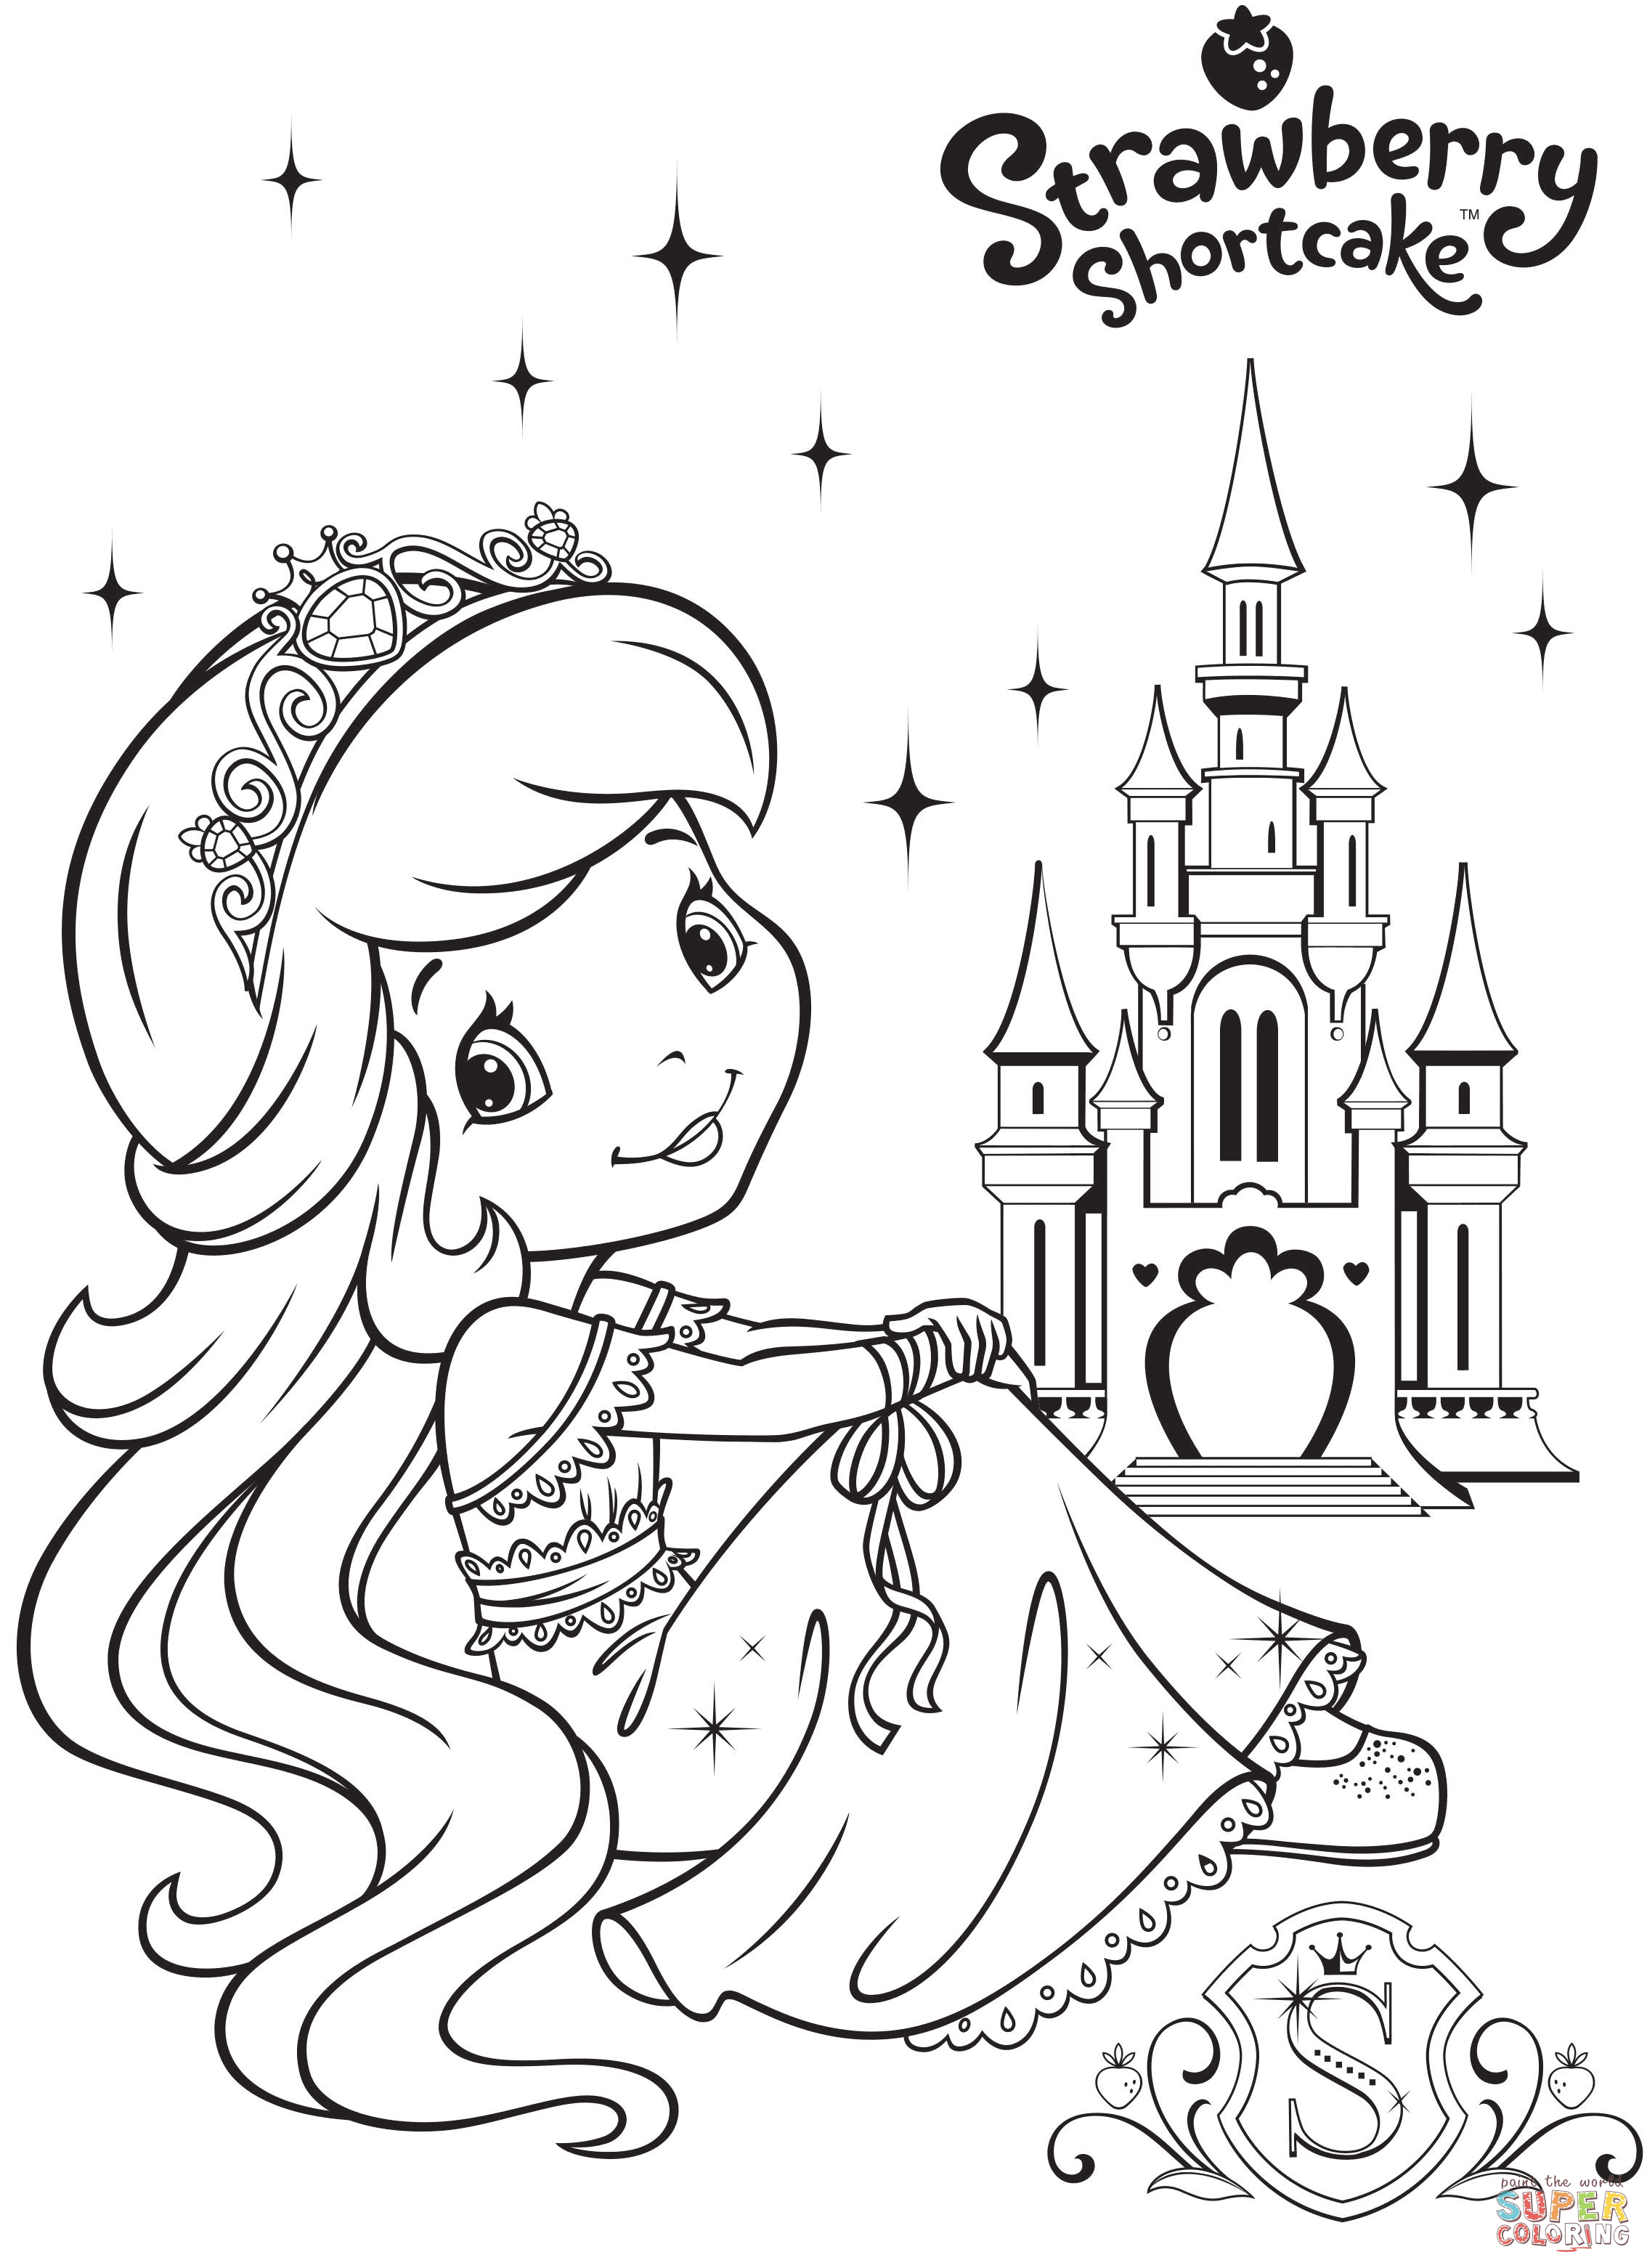 Super Coloring Pages For S